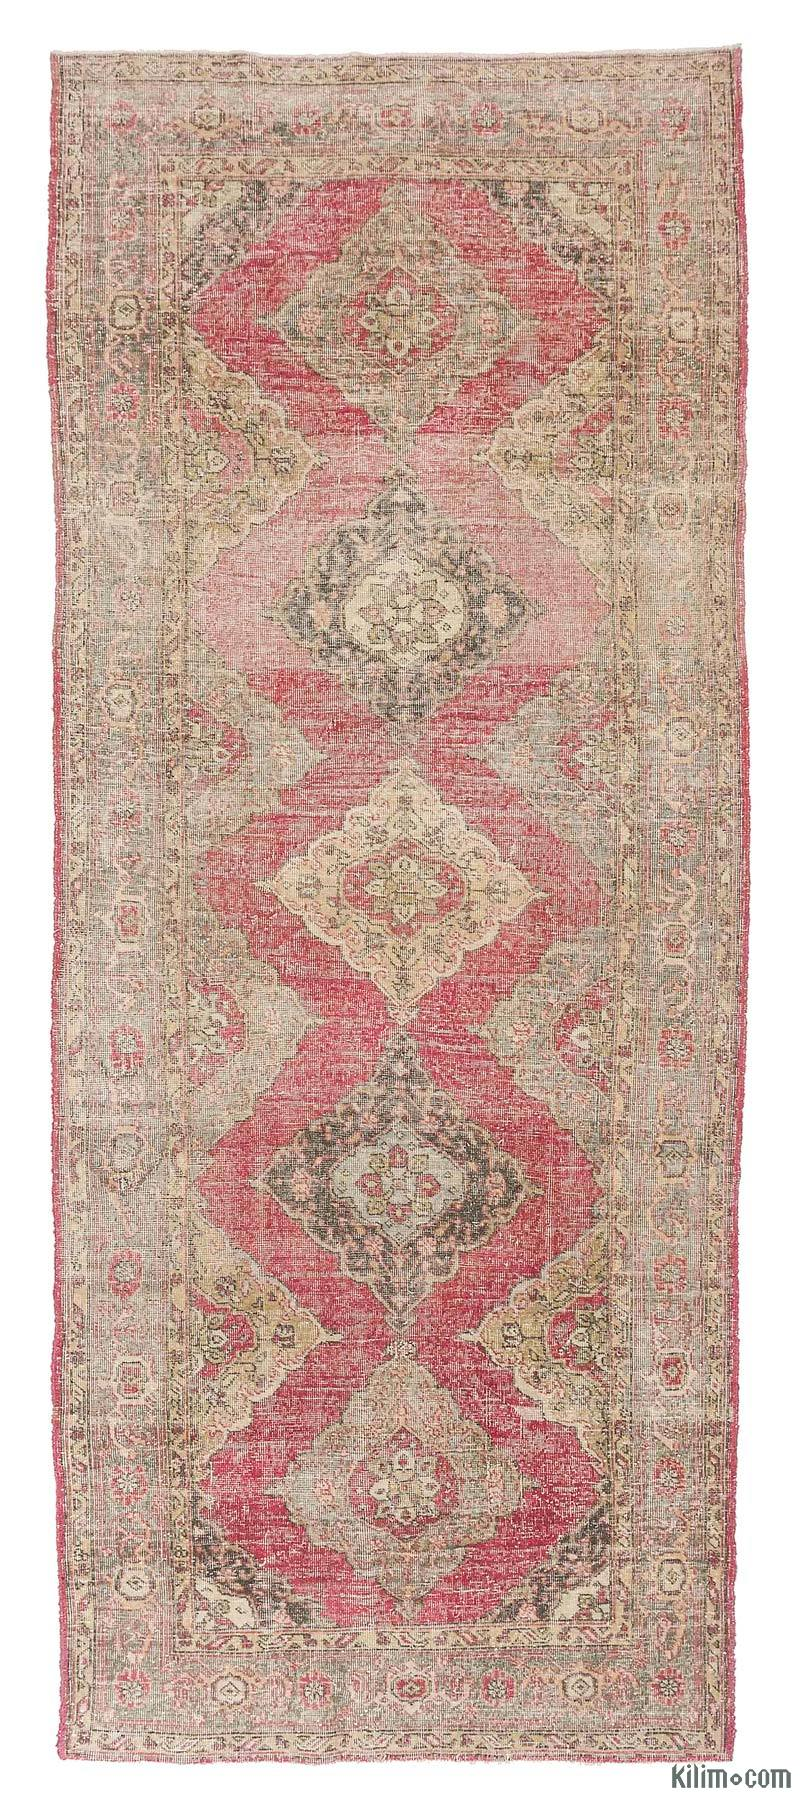 K0018821 Turkish Vintage Runner Rug